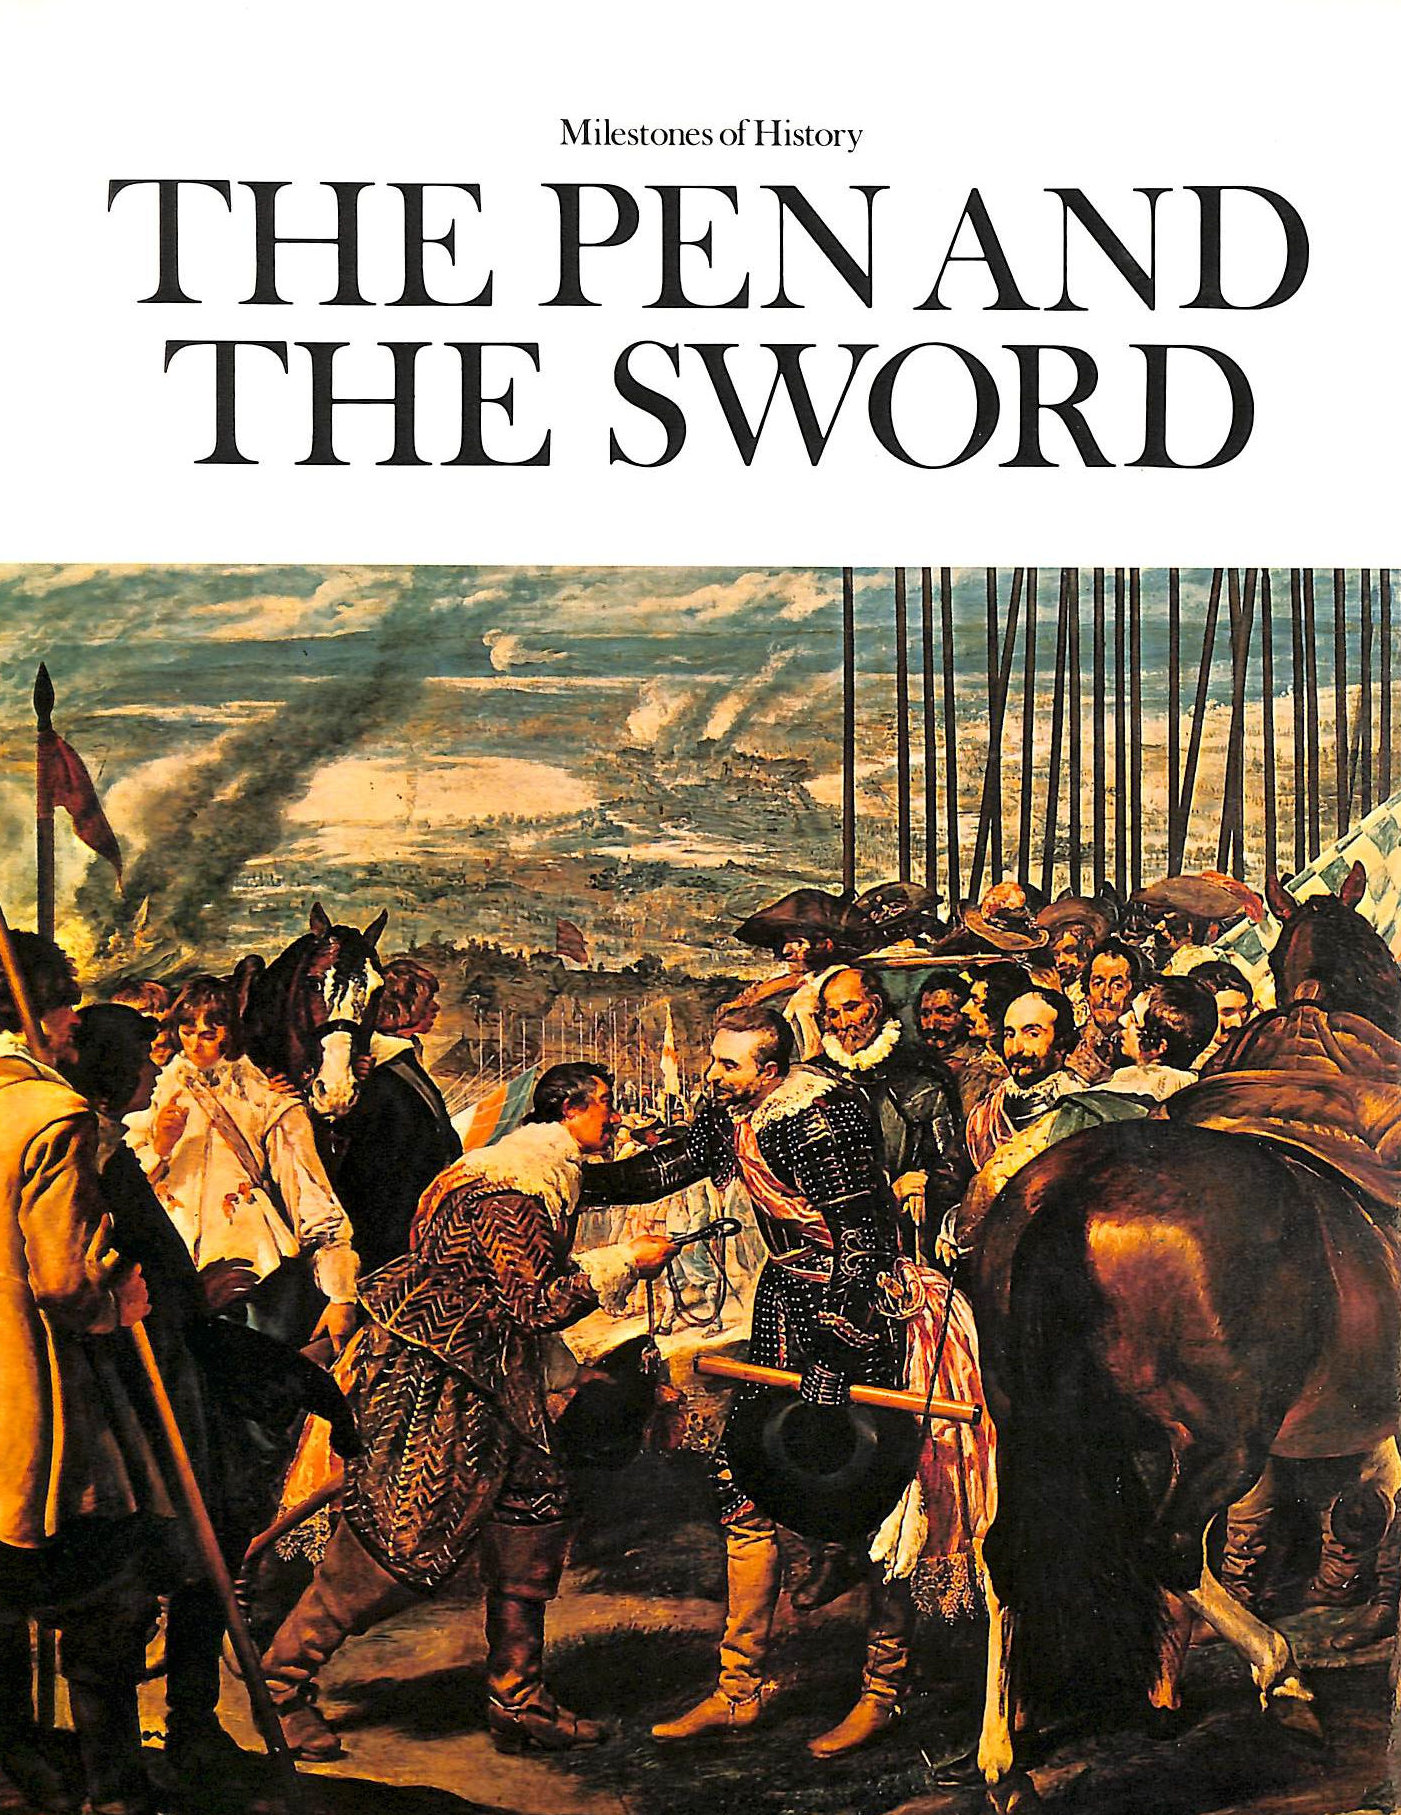 Image for The pen and the sword (Milestones of history)